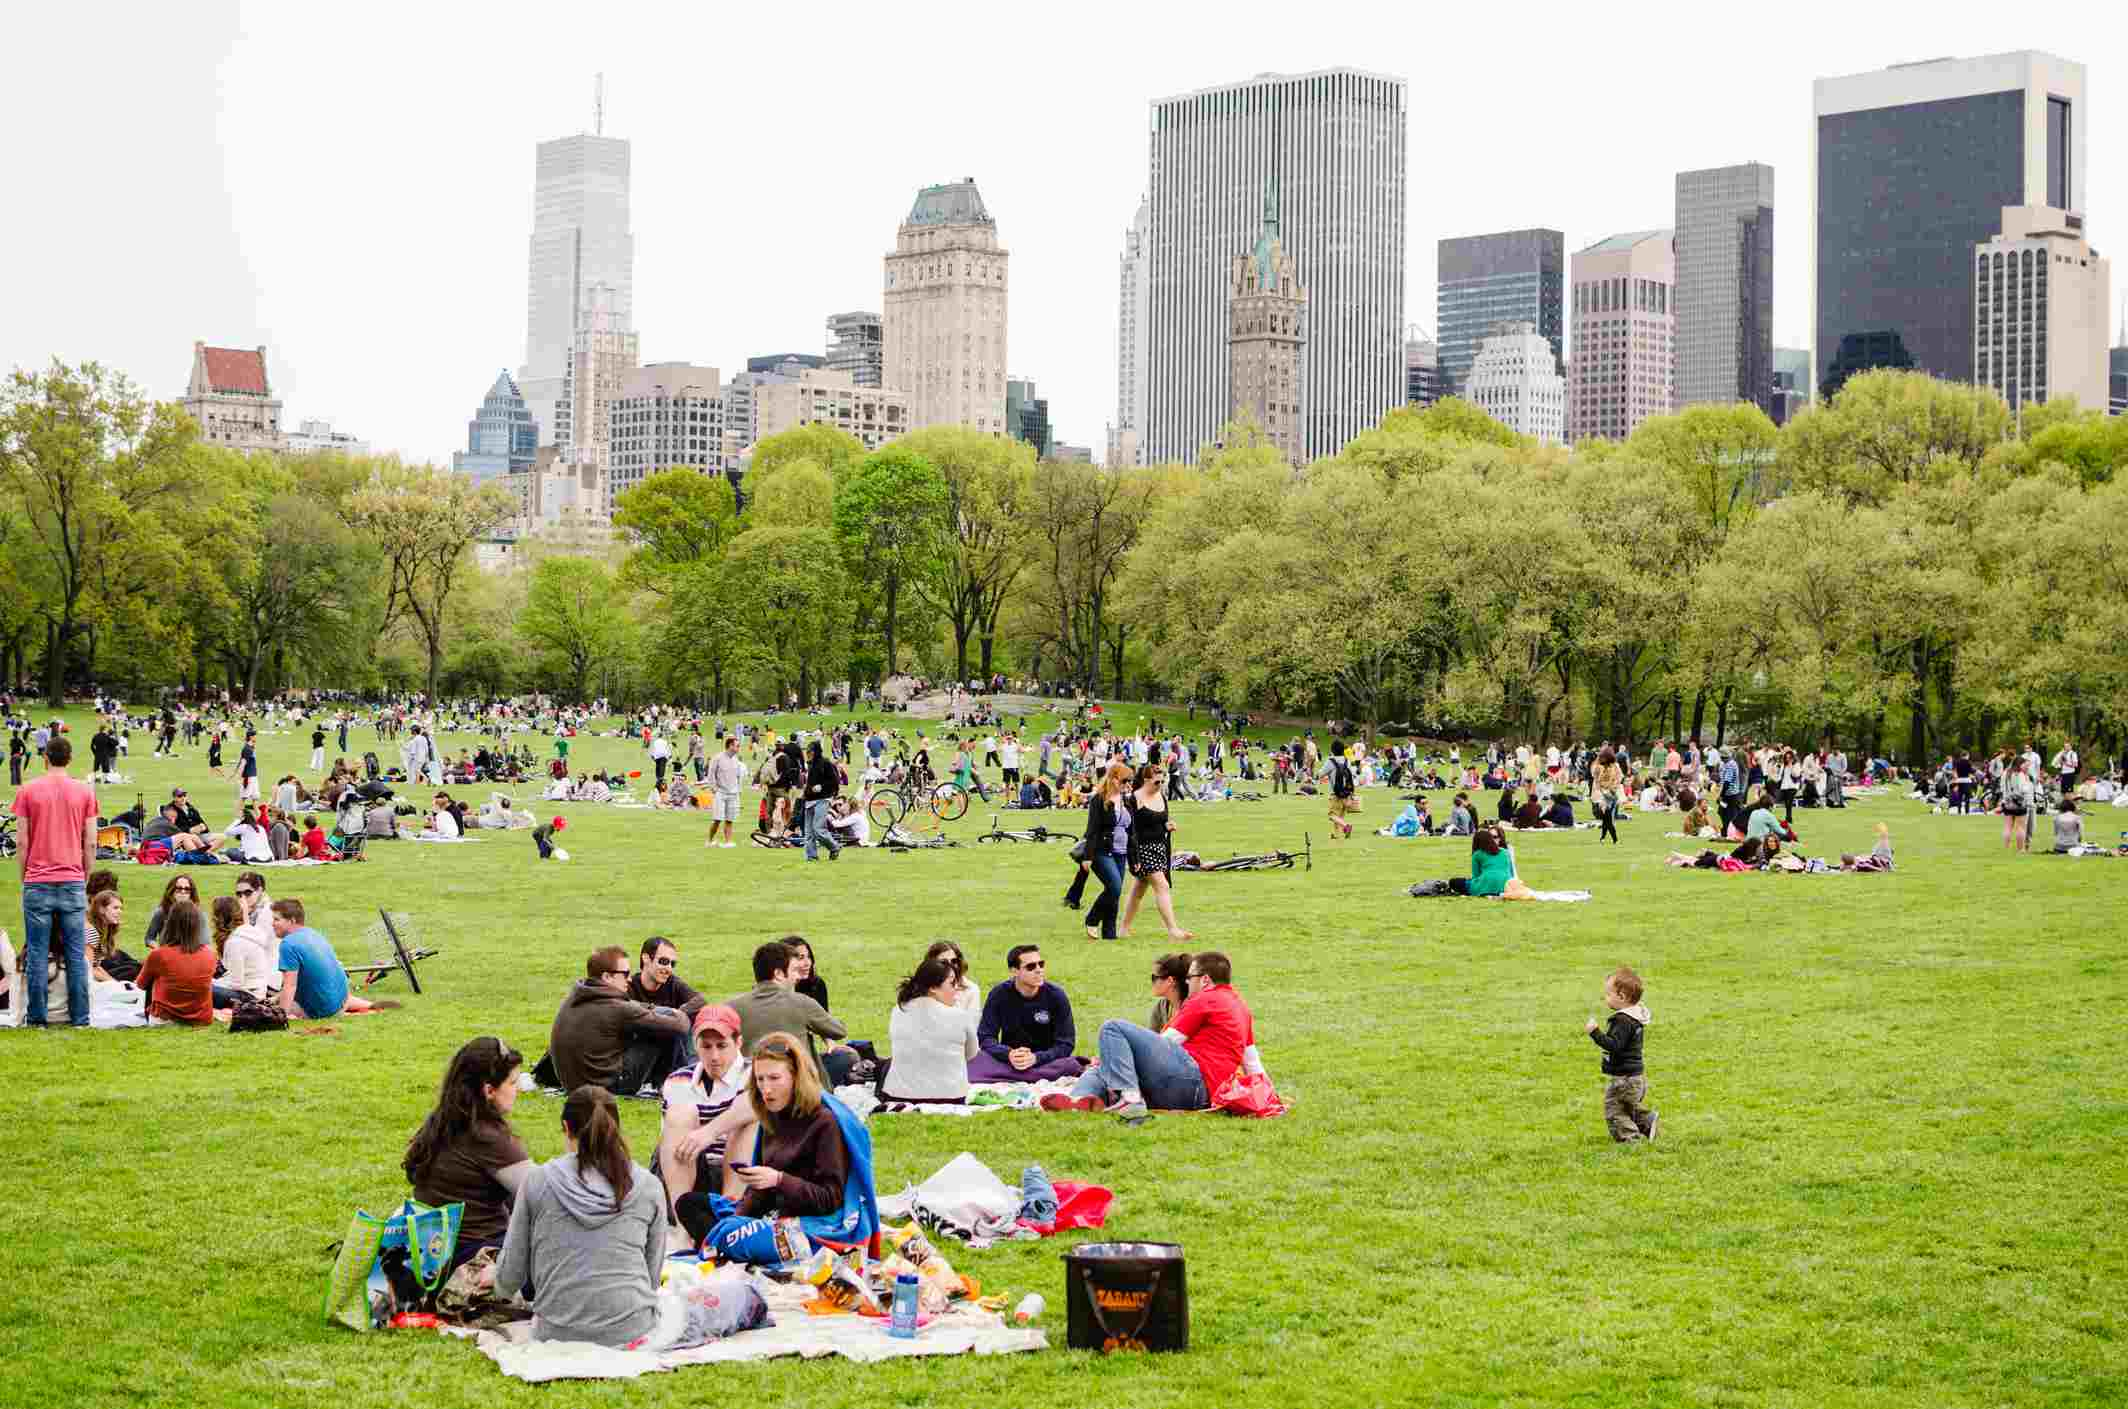 People enjoying picnic in Central Park, New York City